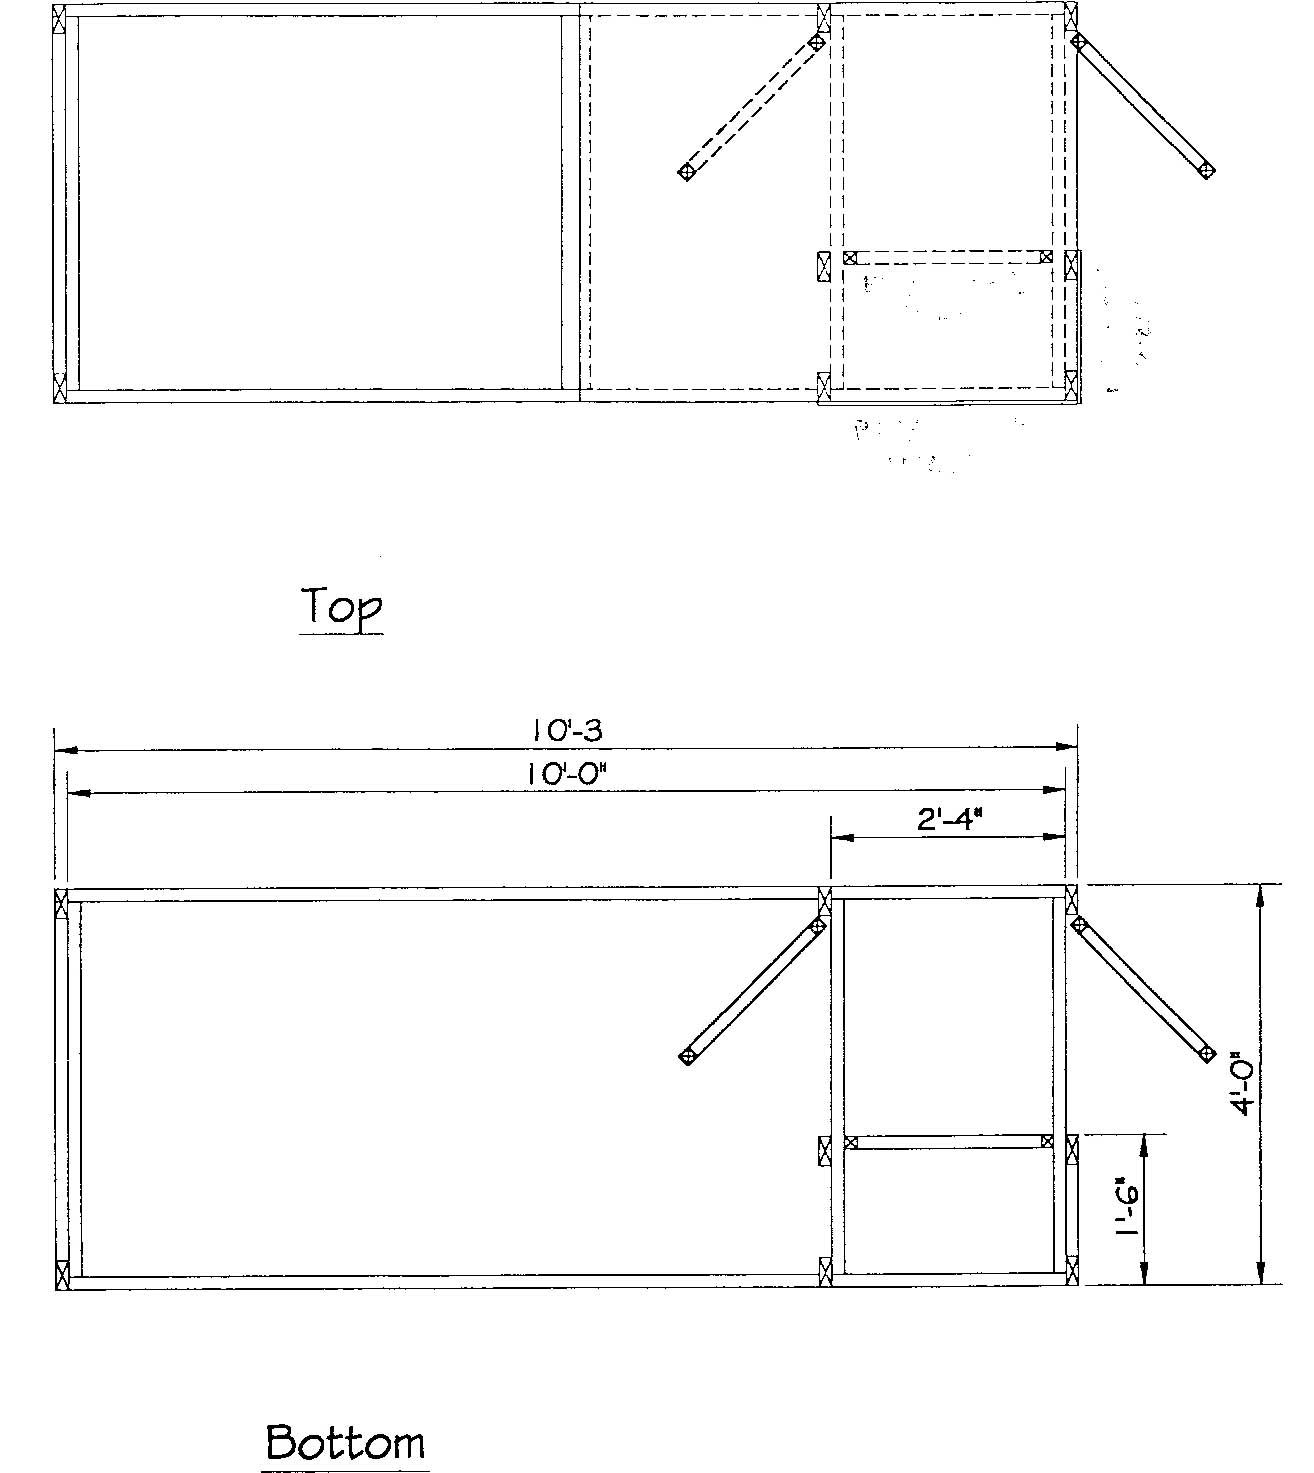 outdoor bird aviary plans   Aviaries and Enclosures   Pinterest ...